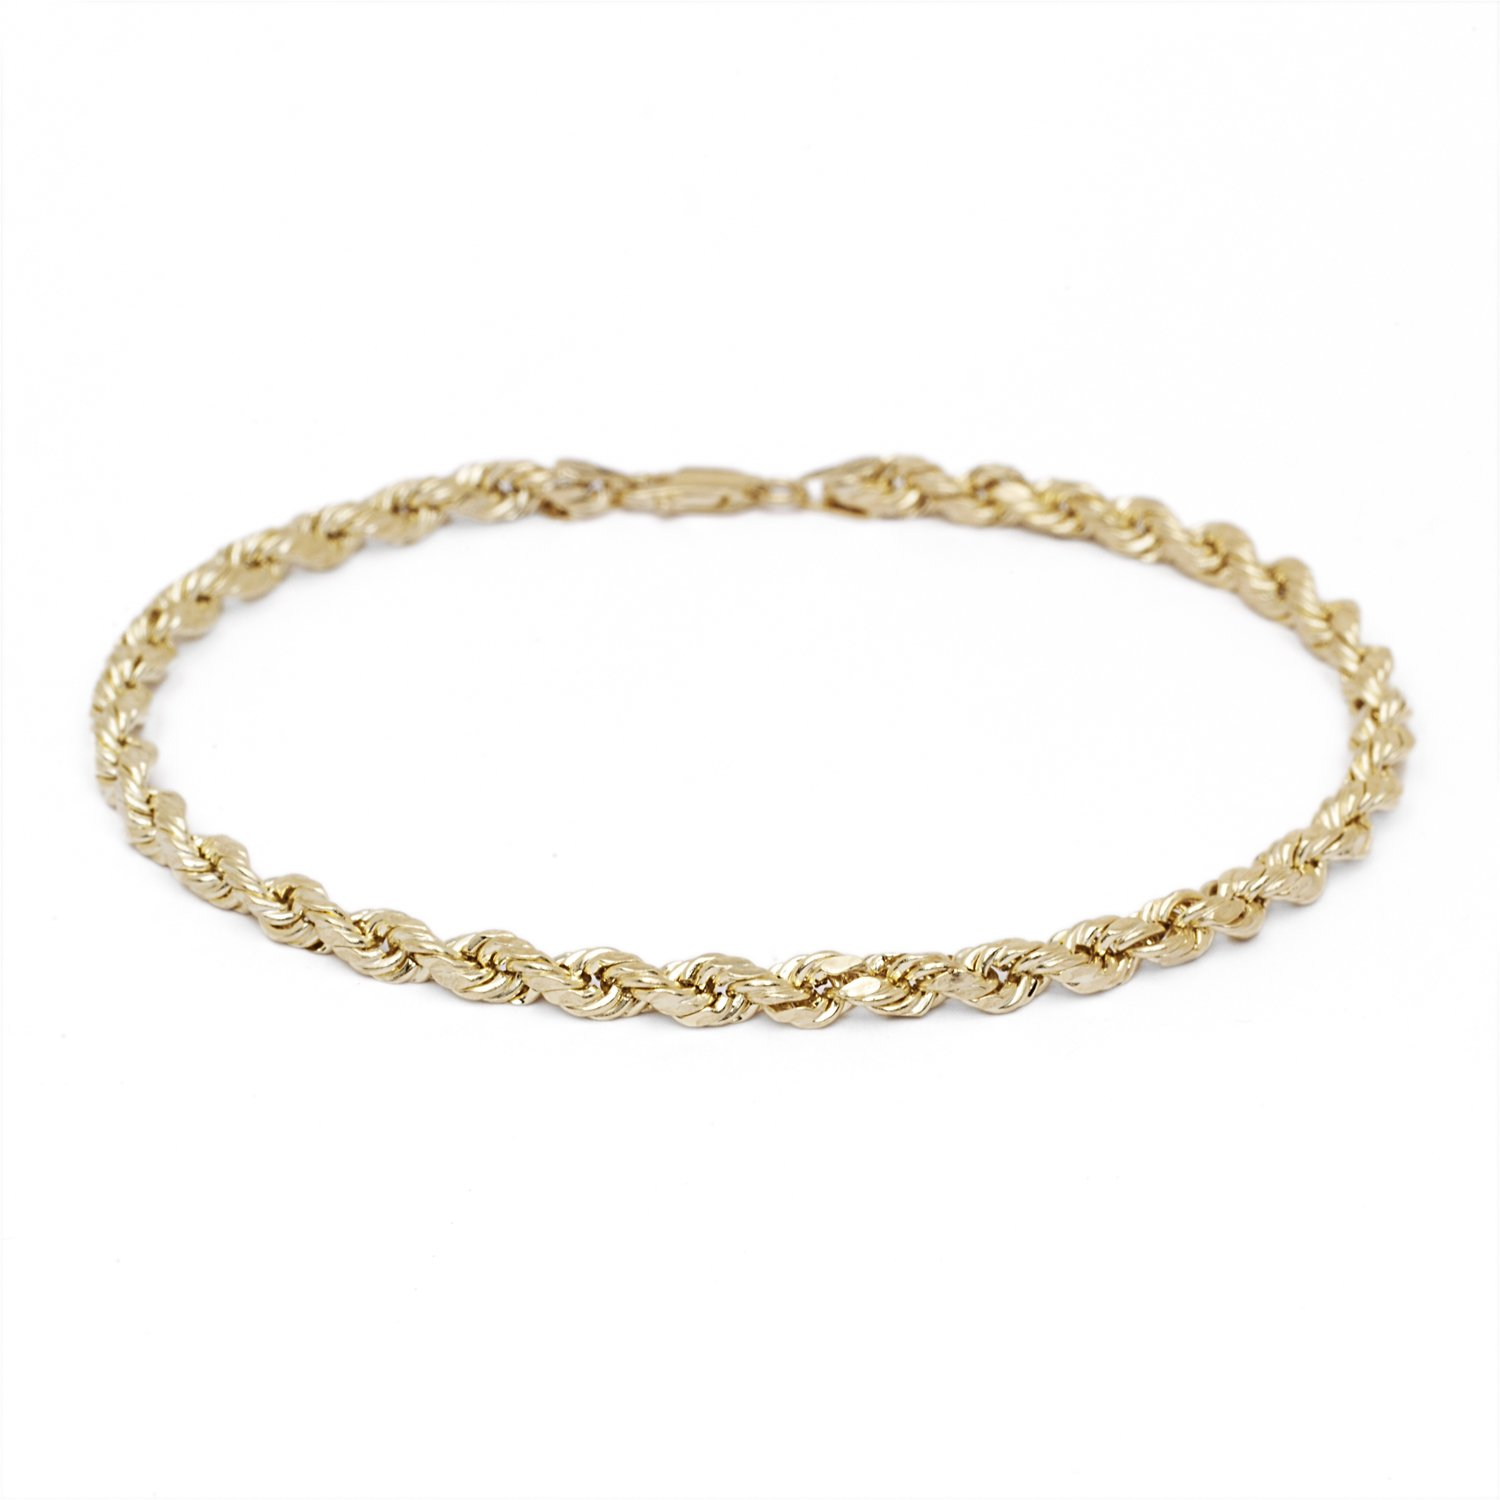 10 Inch Solid Diamond Cut Rope Chain Bracelet and Anklet - 10k Yellow Gold - 3mm (0.12'')